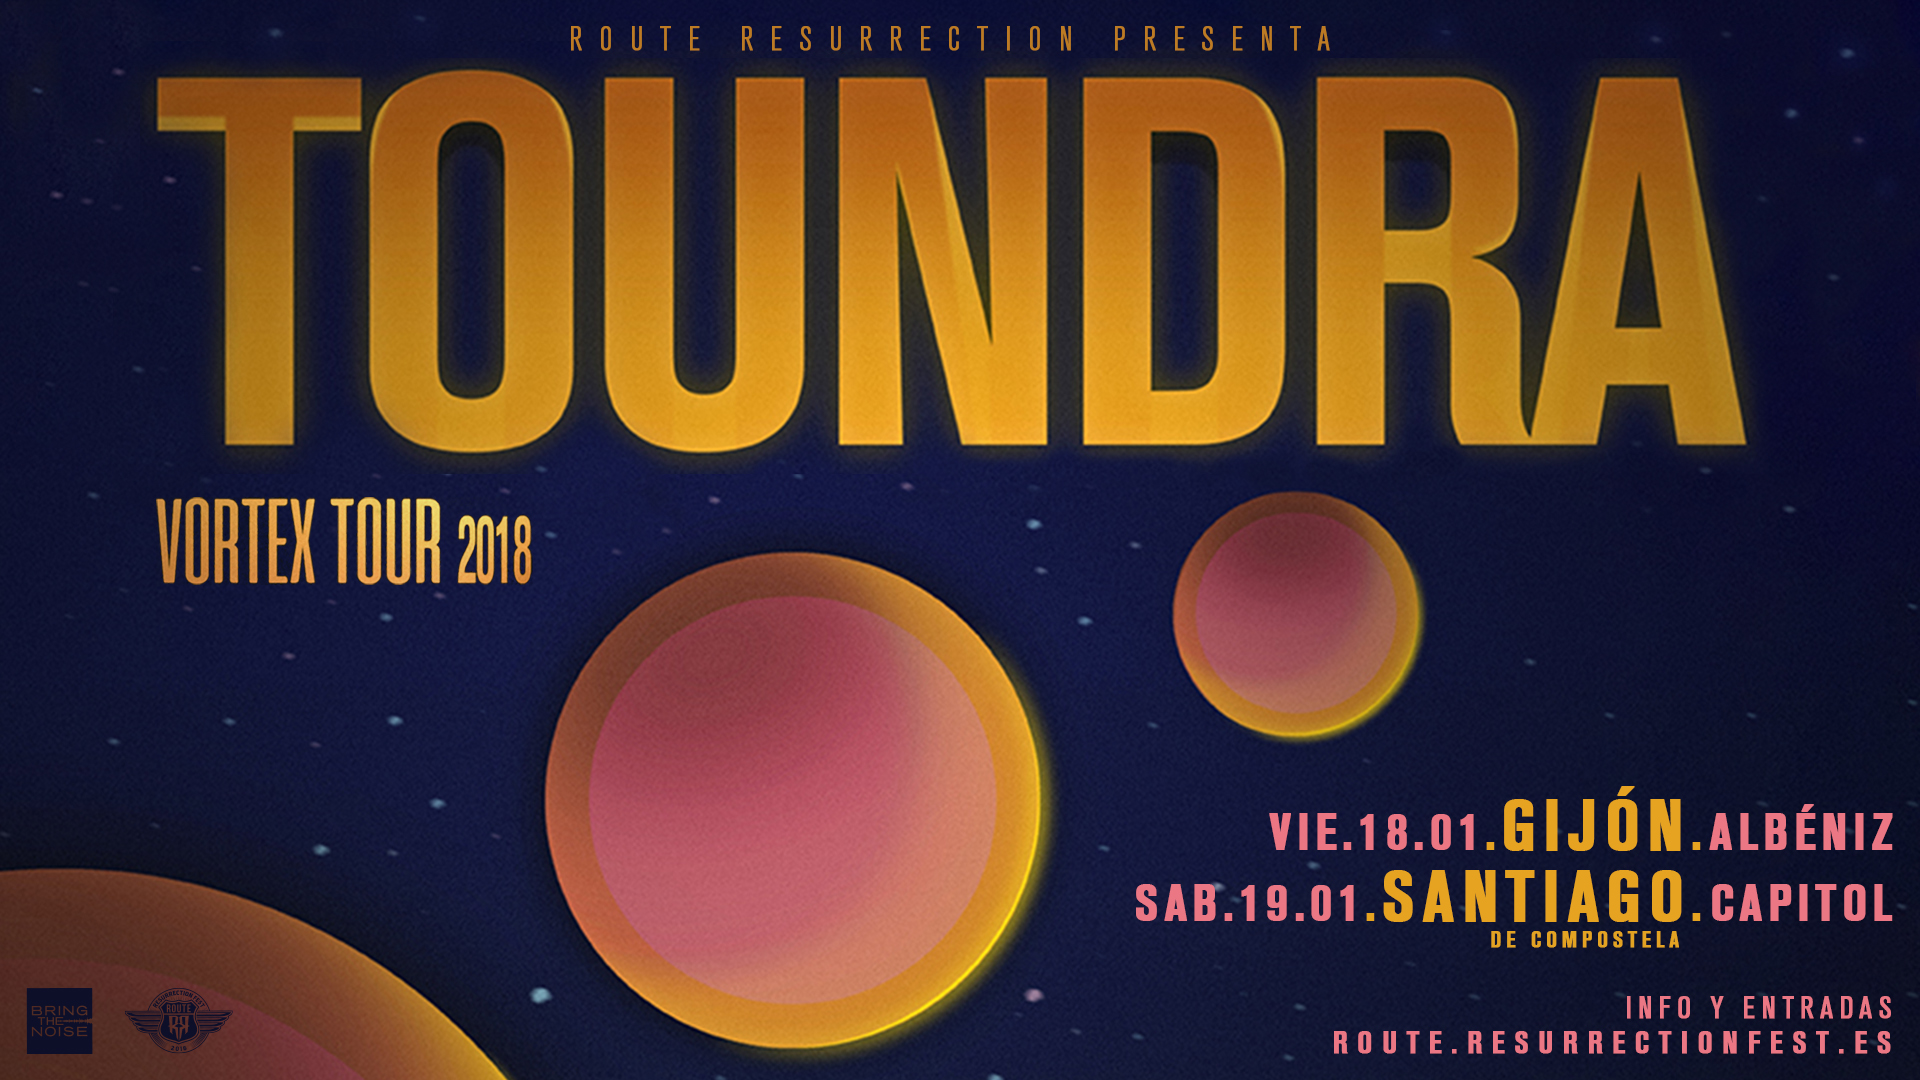 Route-Resurrection-2019-Toundra-Event